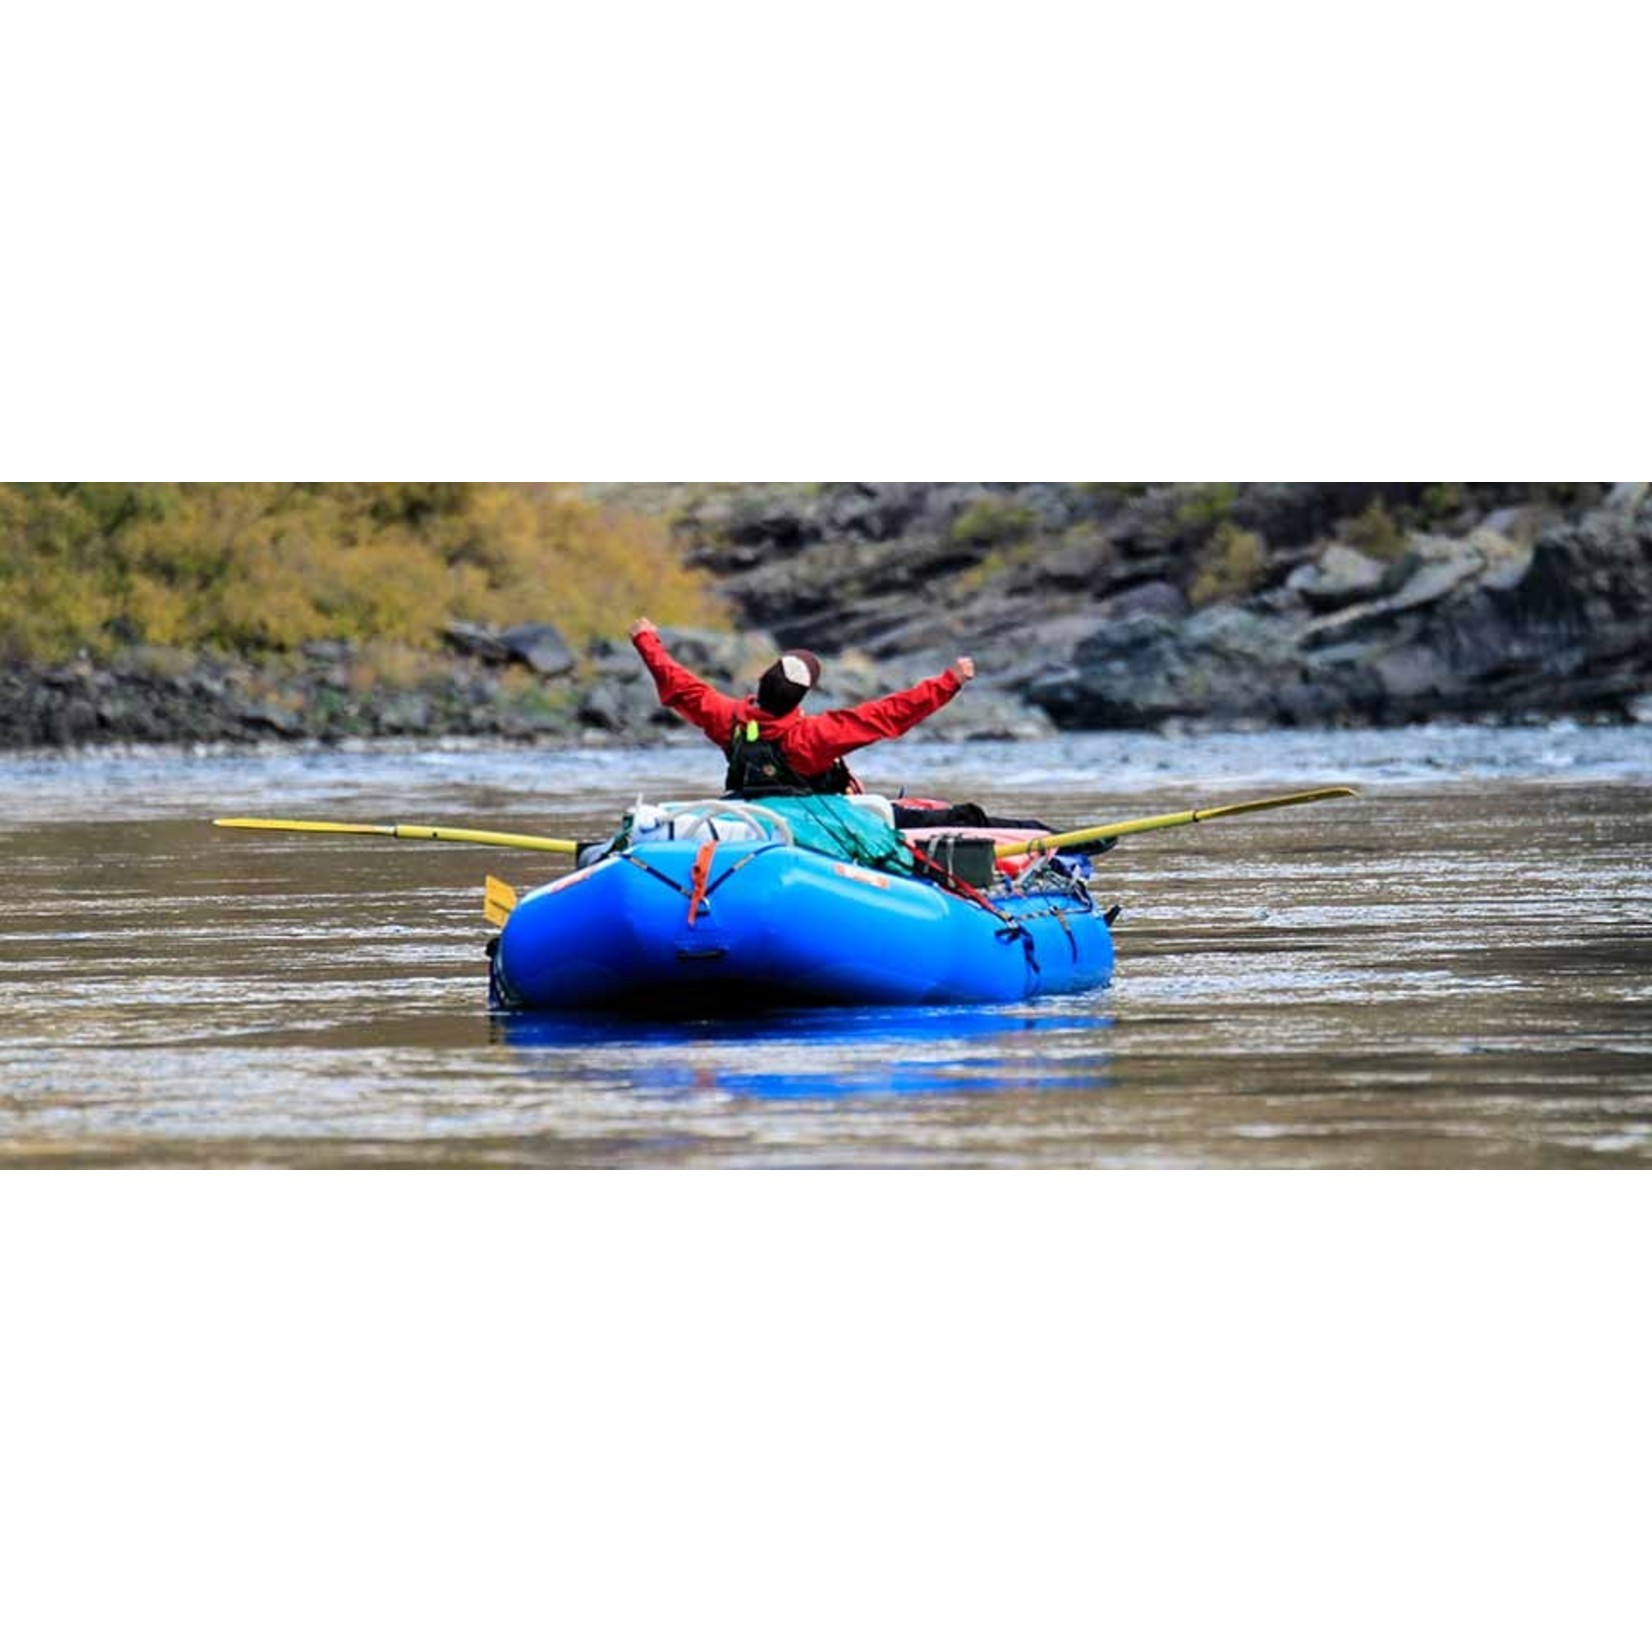 Hyside Inflatables Hyside  Pro 16.0